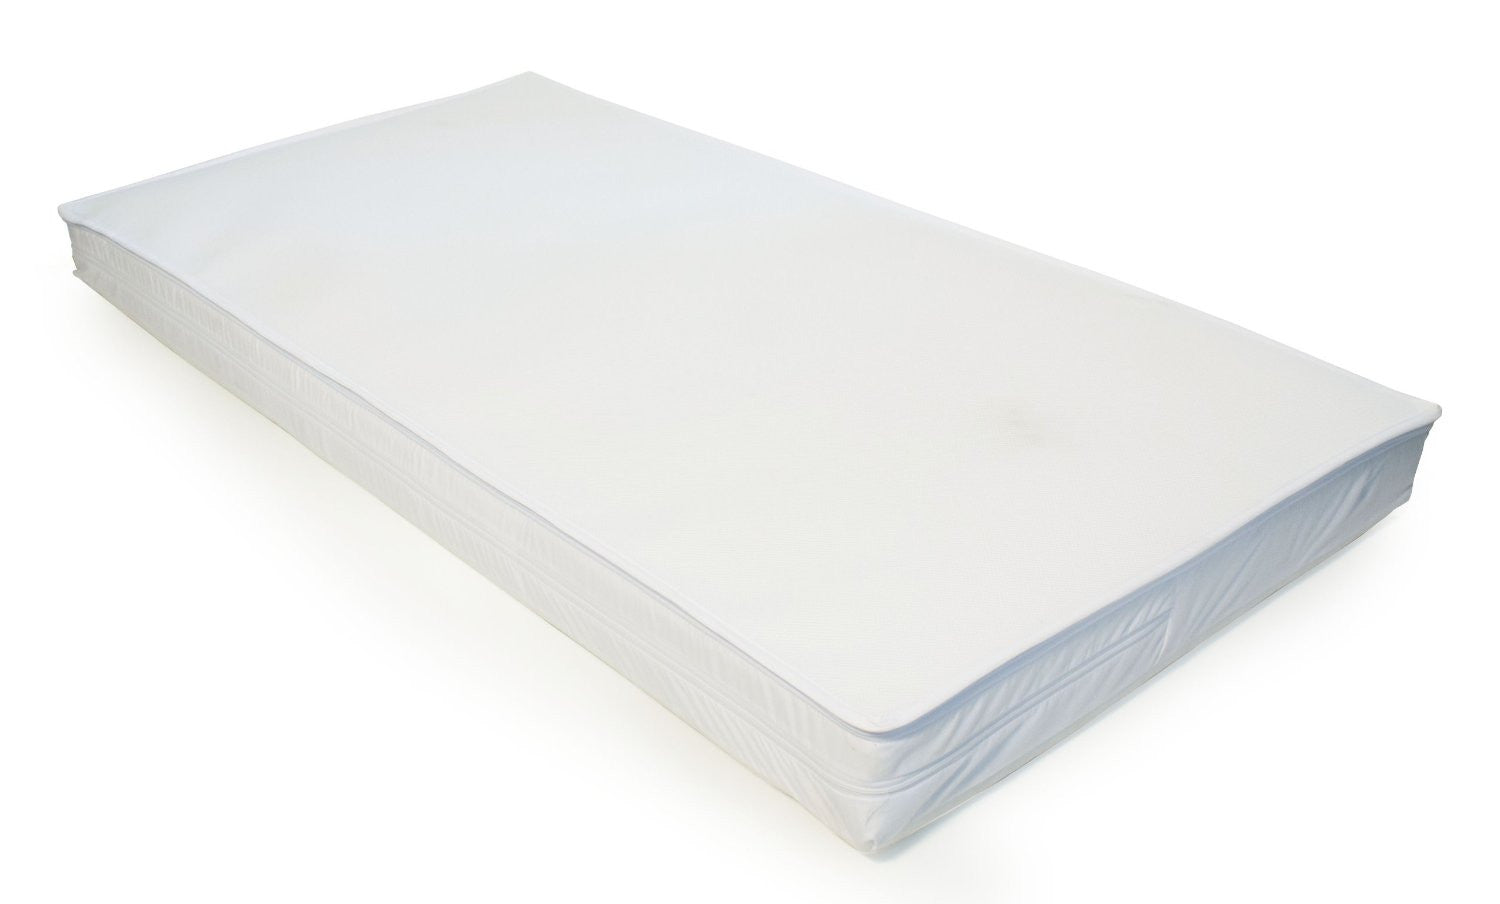 NEW DELUXE SAFETY MATTRESS FOR NORTON STORM CARRYCOT QUILTED MATTRESS